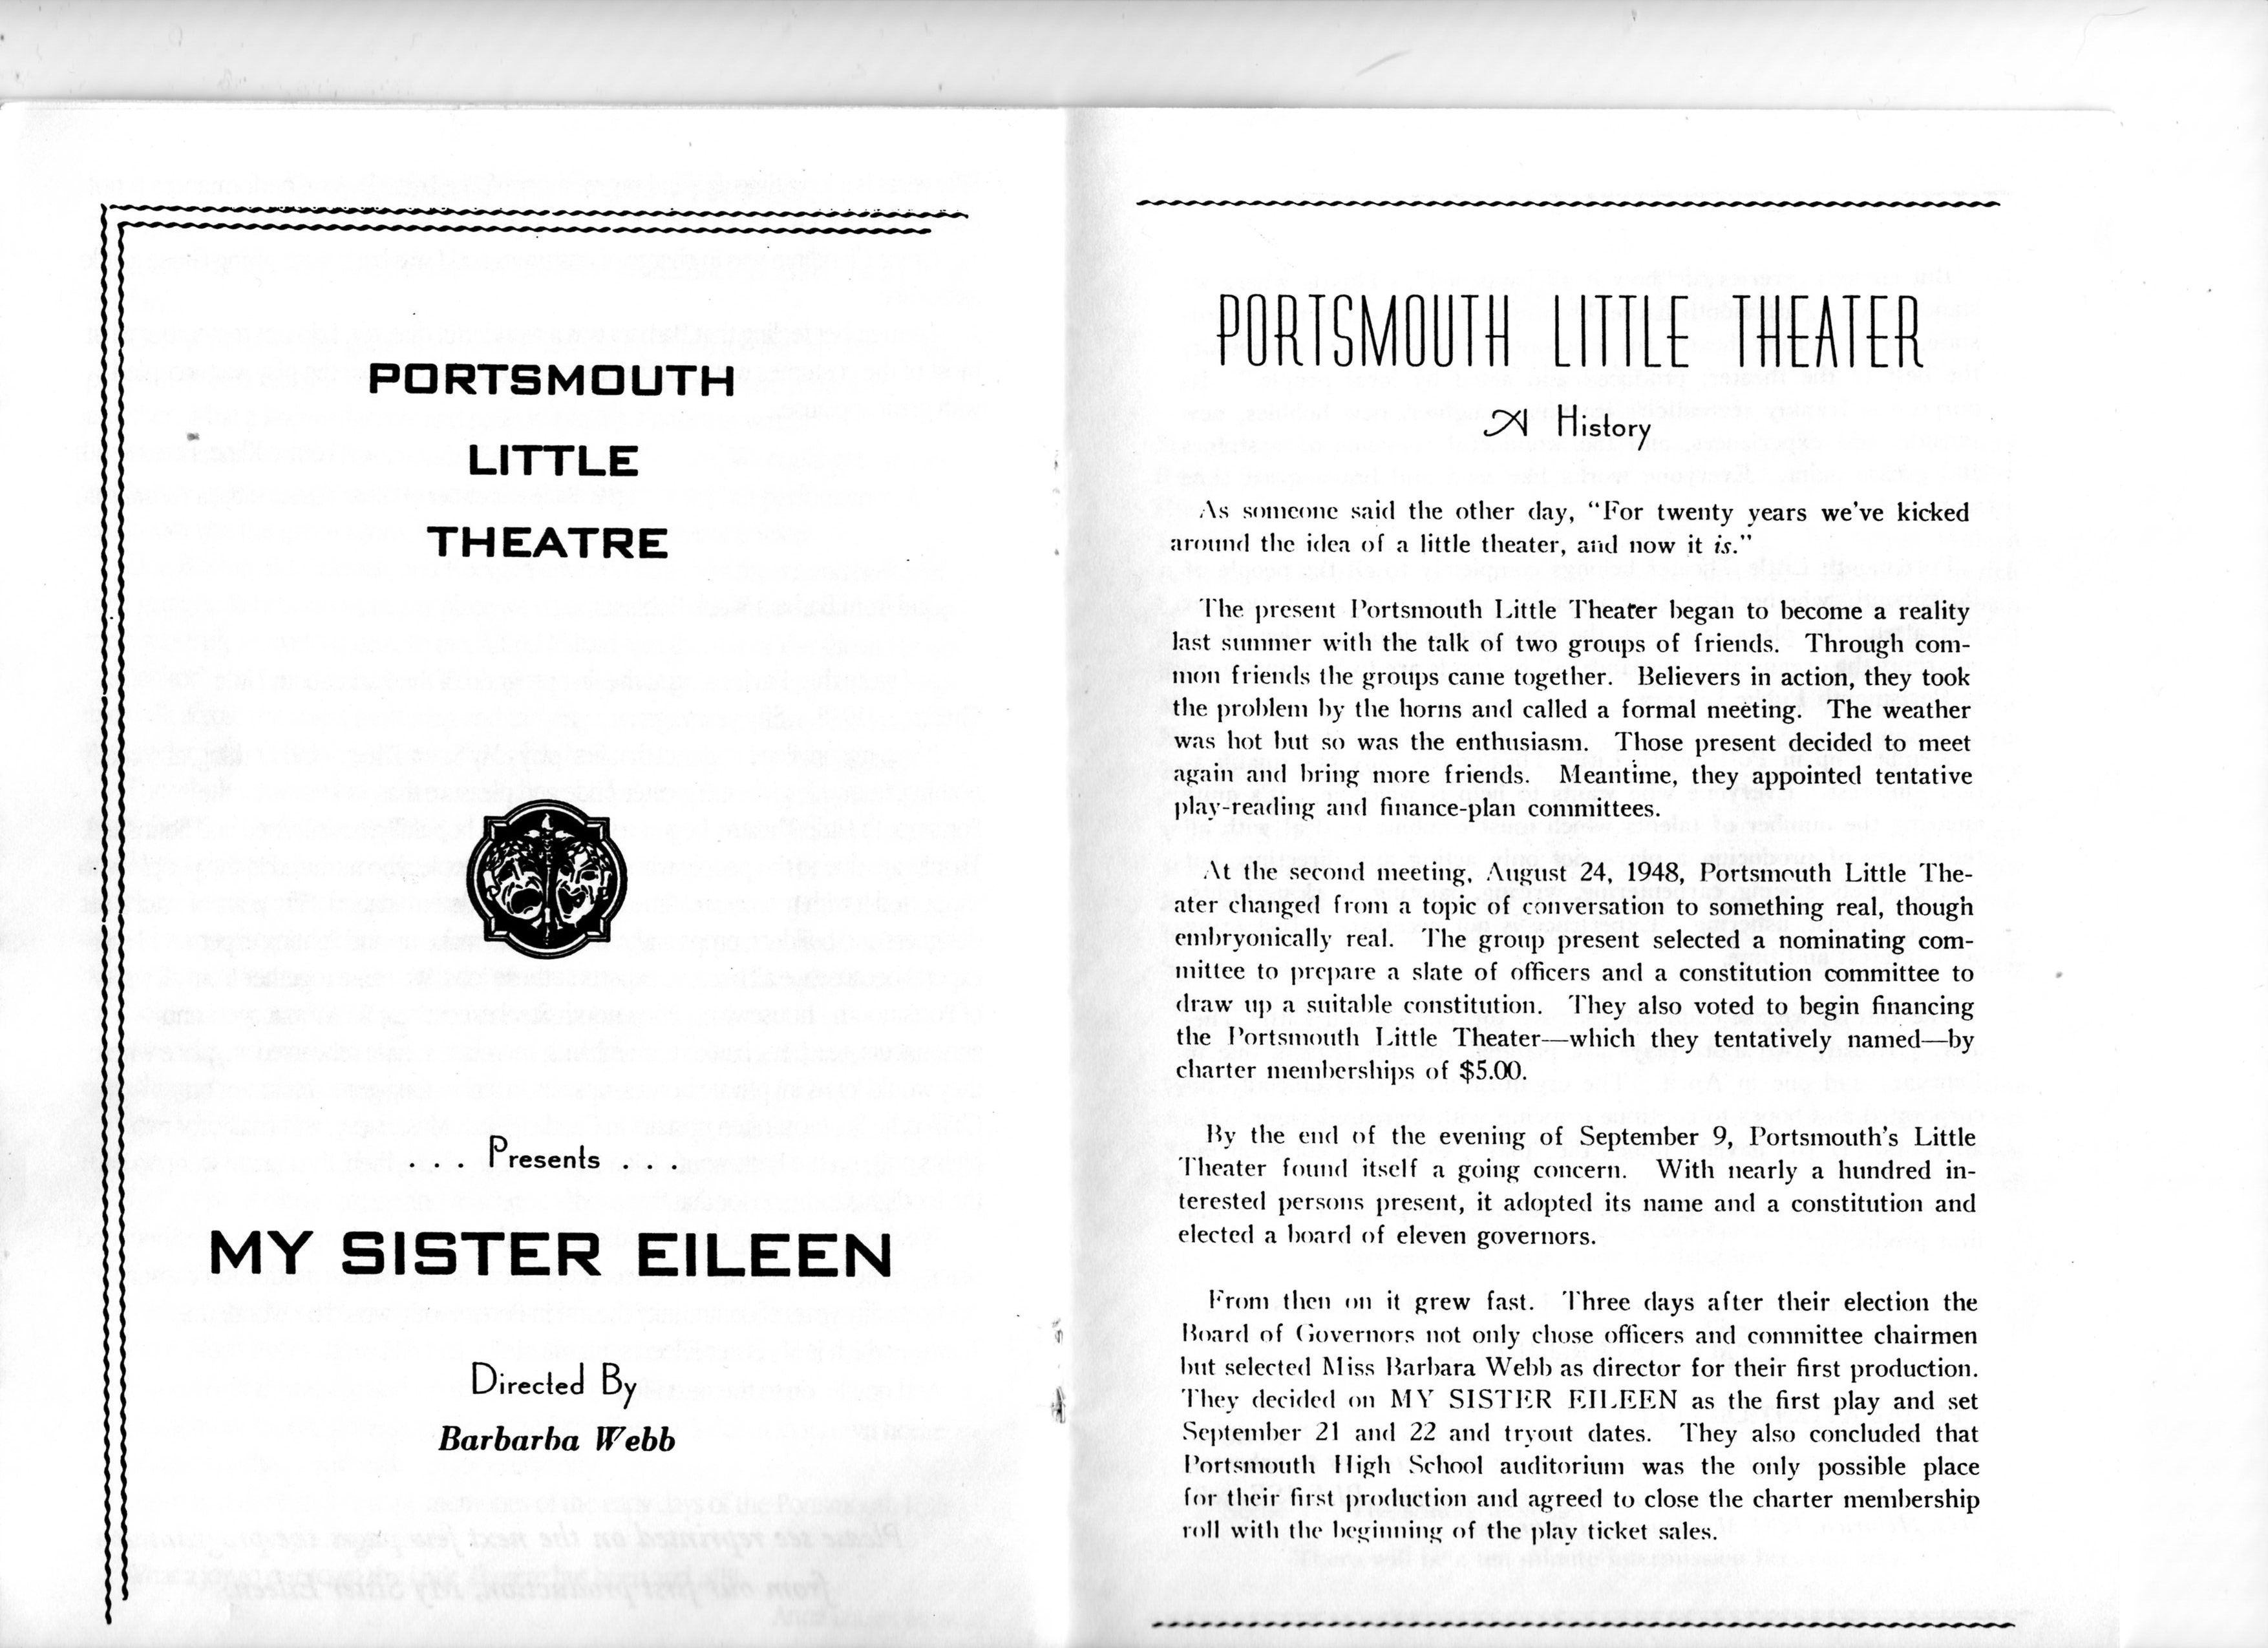 History of Portsmouth Little Theatre